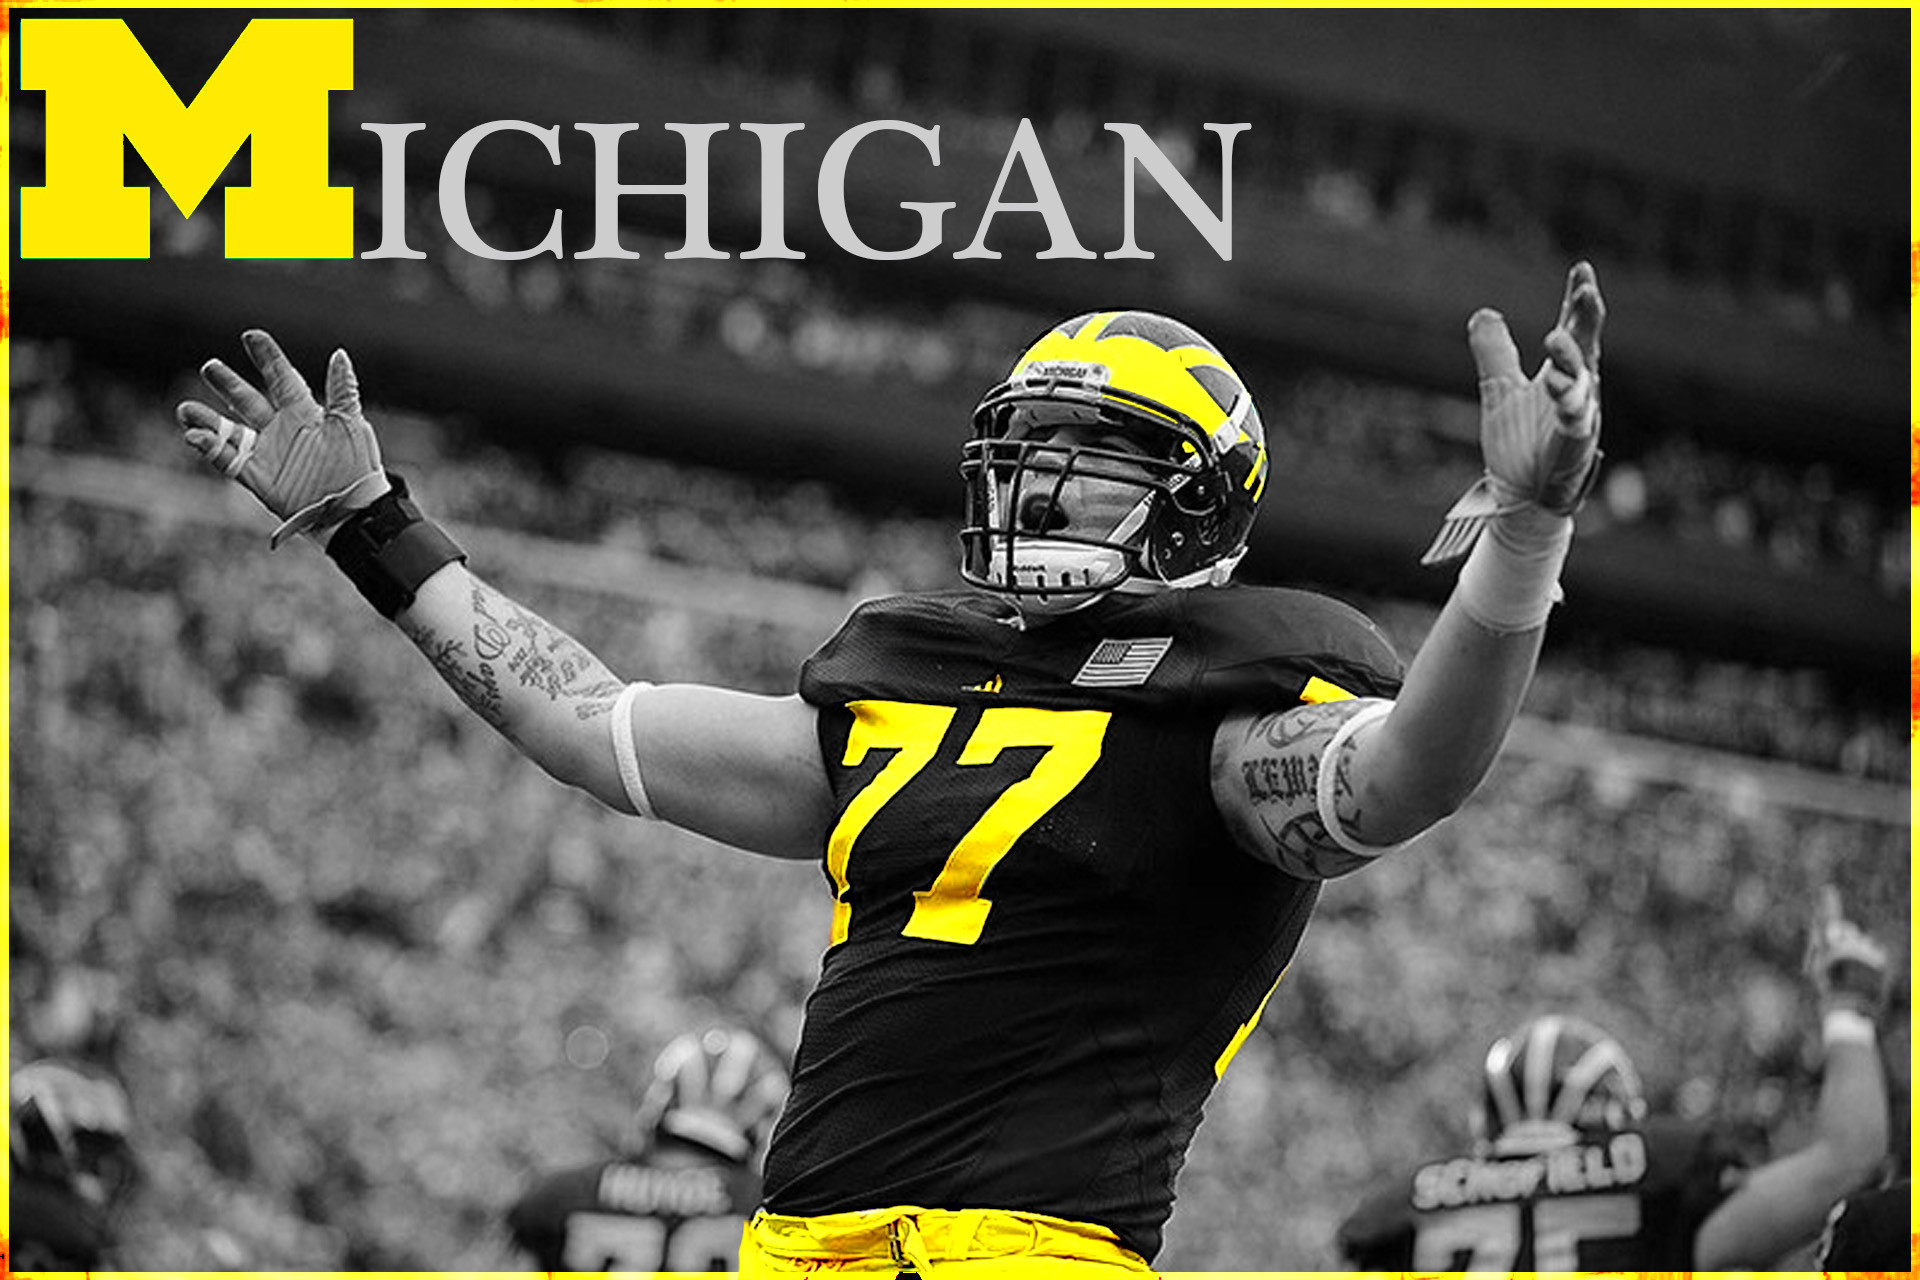 Michigan Football Desktop Wallpaper 71 Images: Michigan Wolverines Football Wallpaper (67+ Images